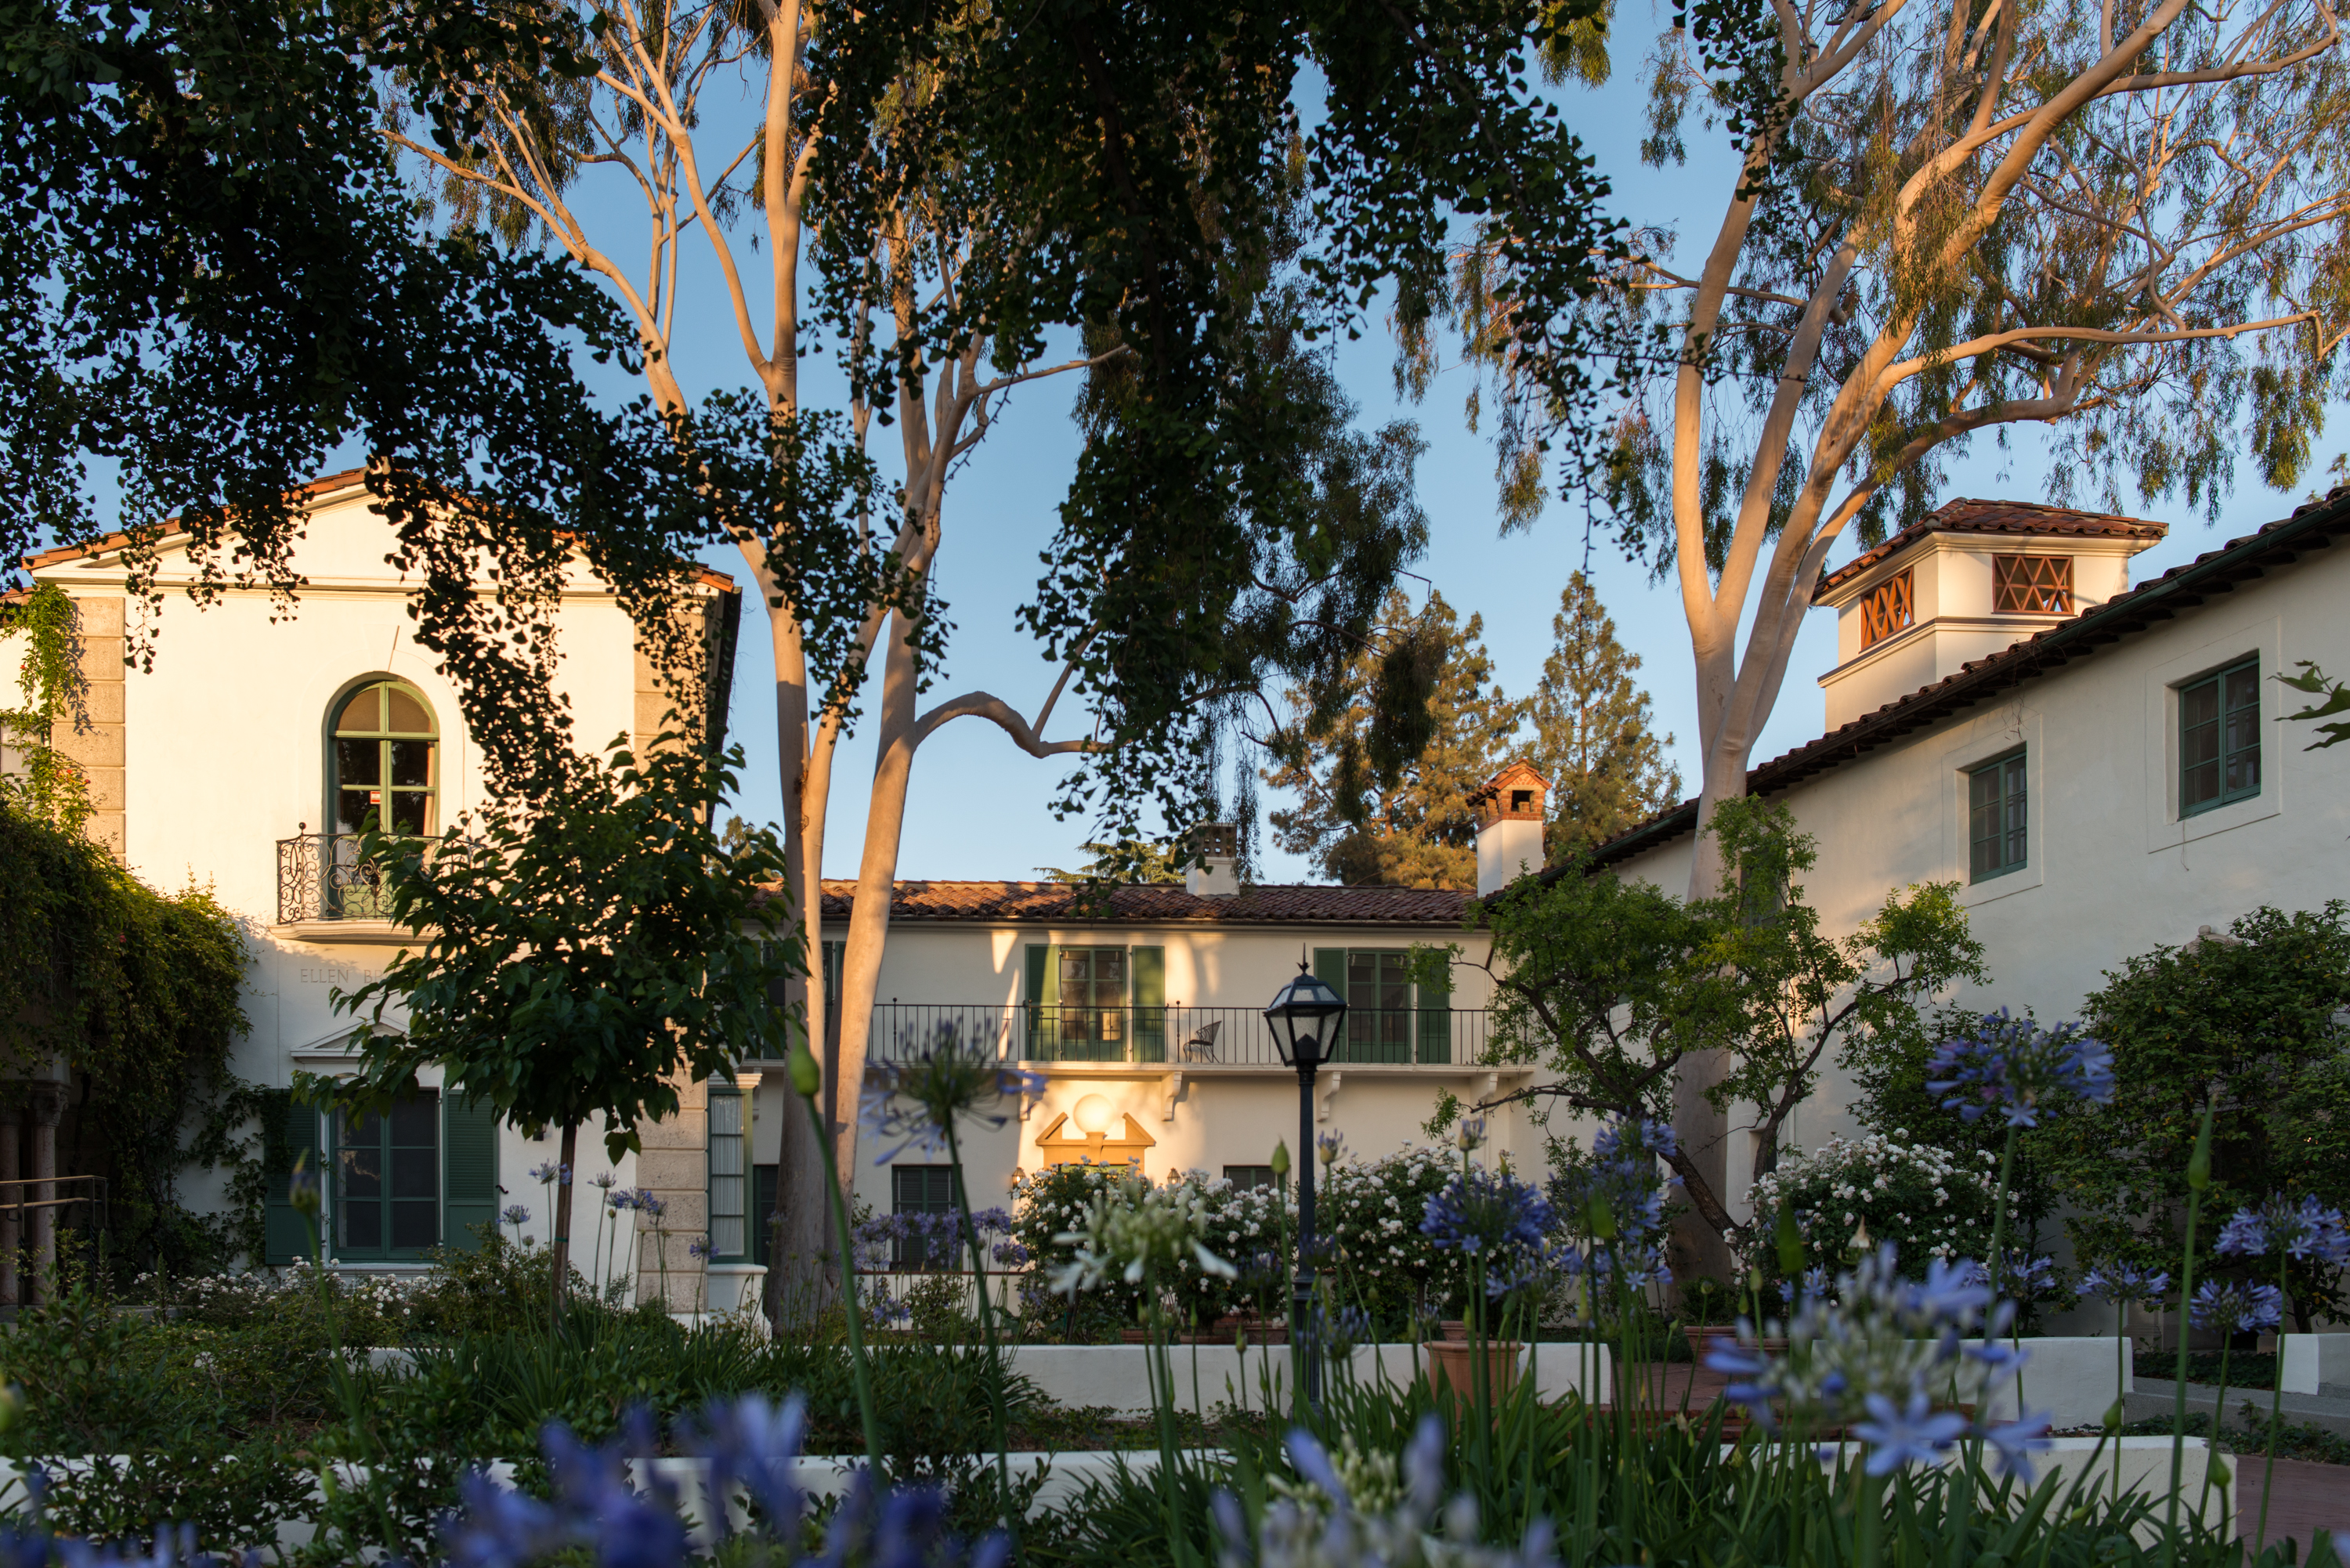 The outside of residence halls at Scripps College.